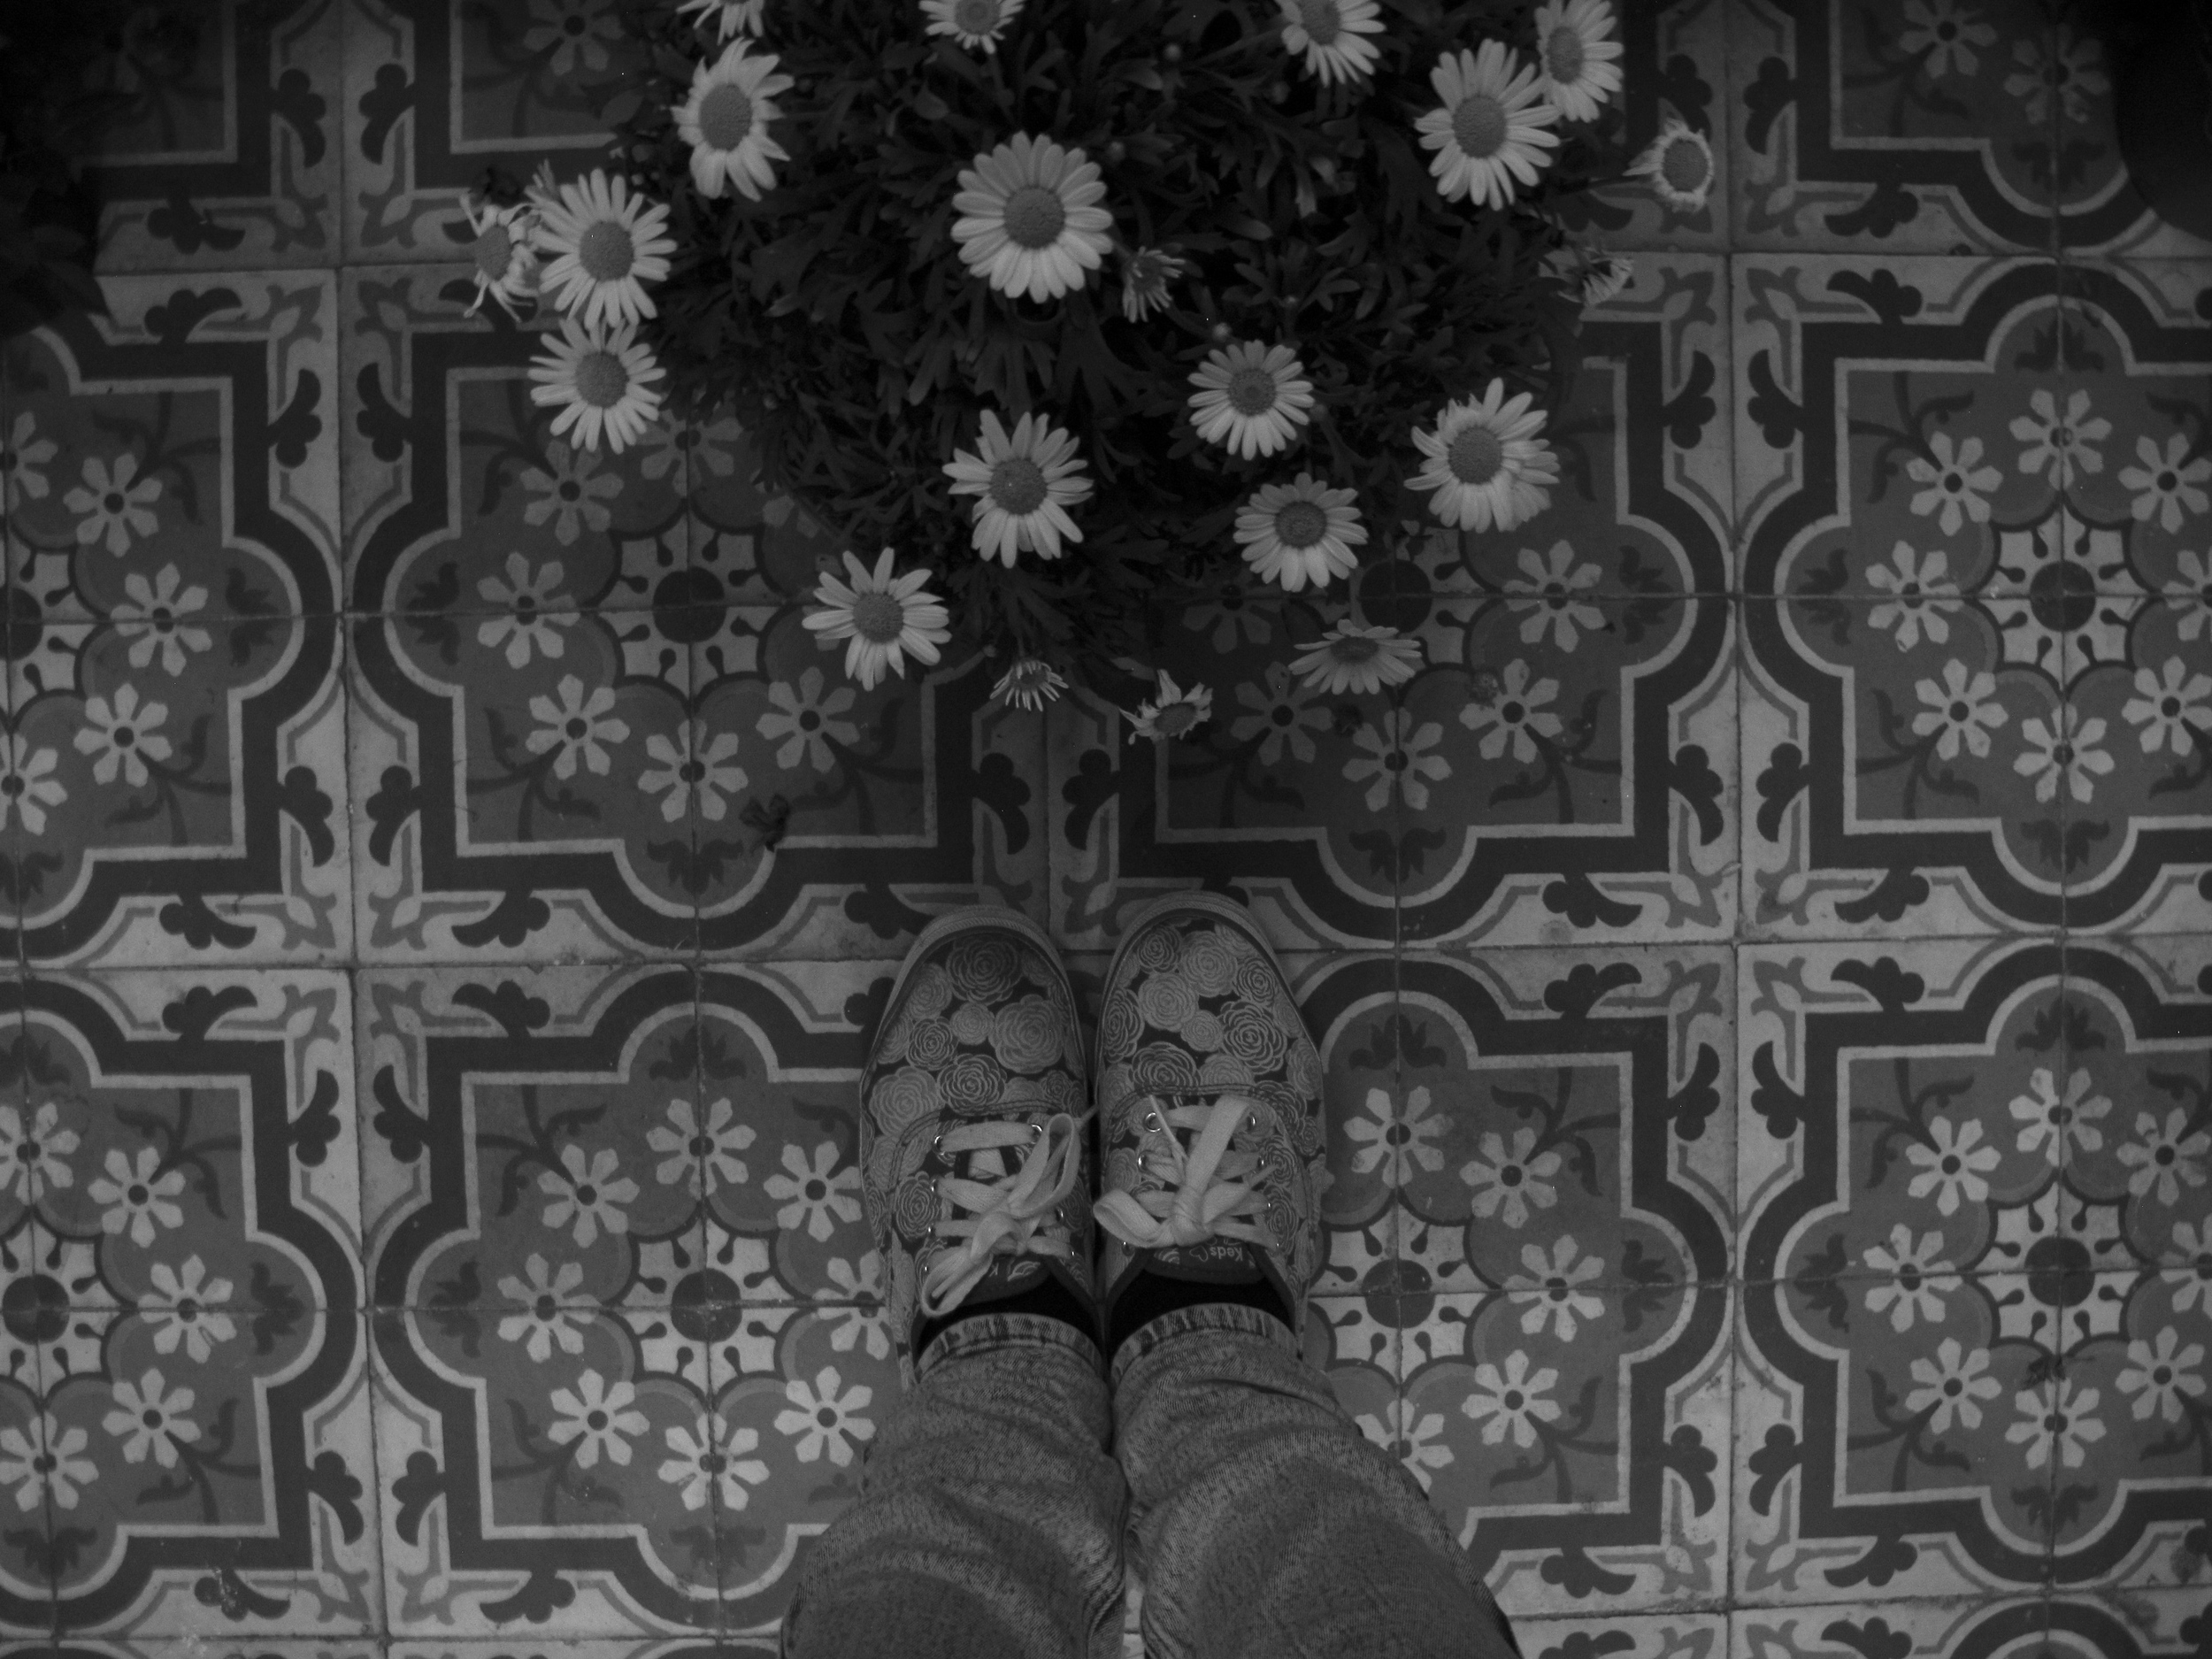 Floor tiles and flowers in Beauvais Cathedral